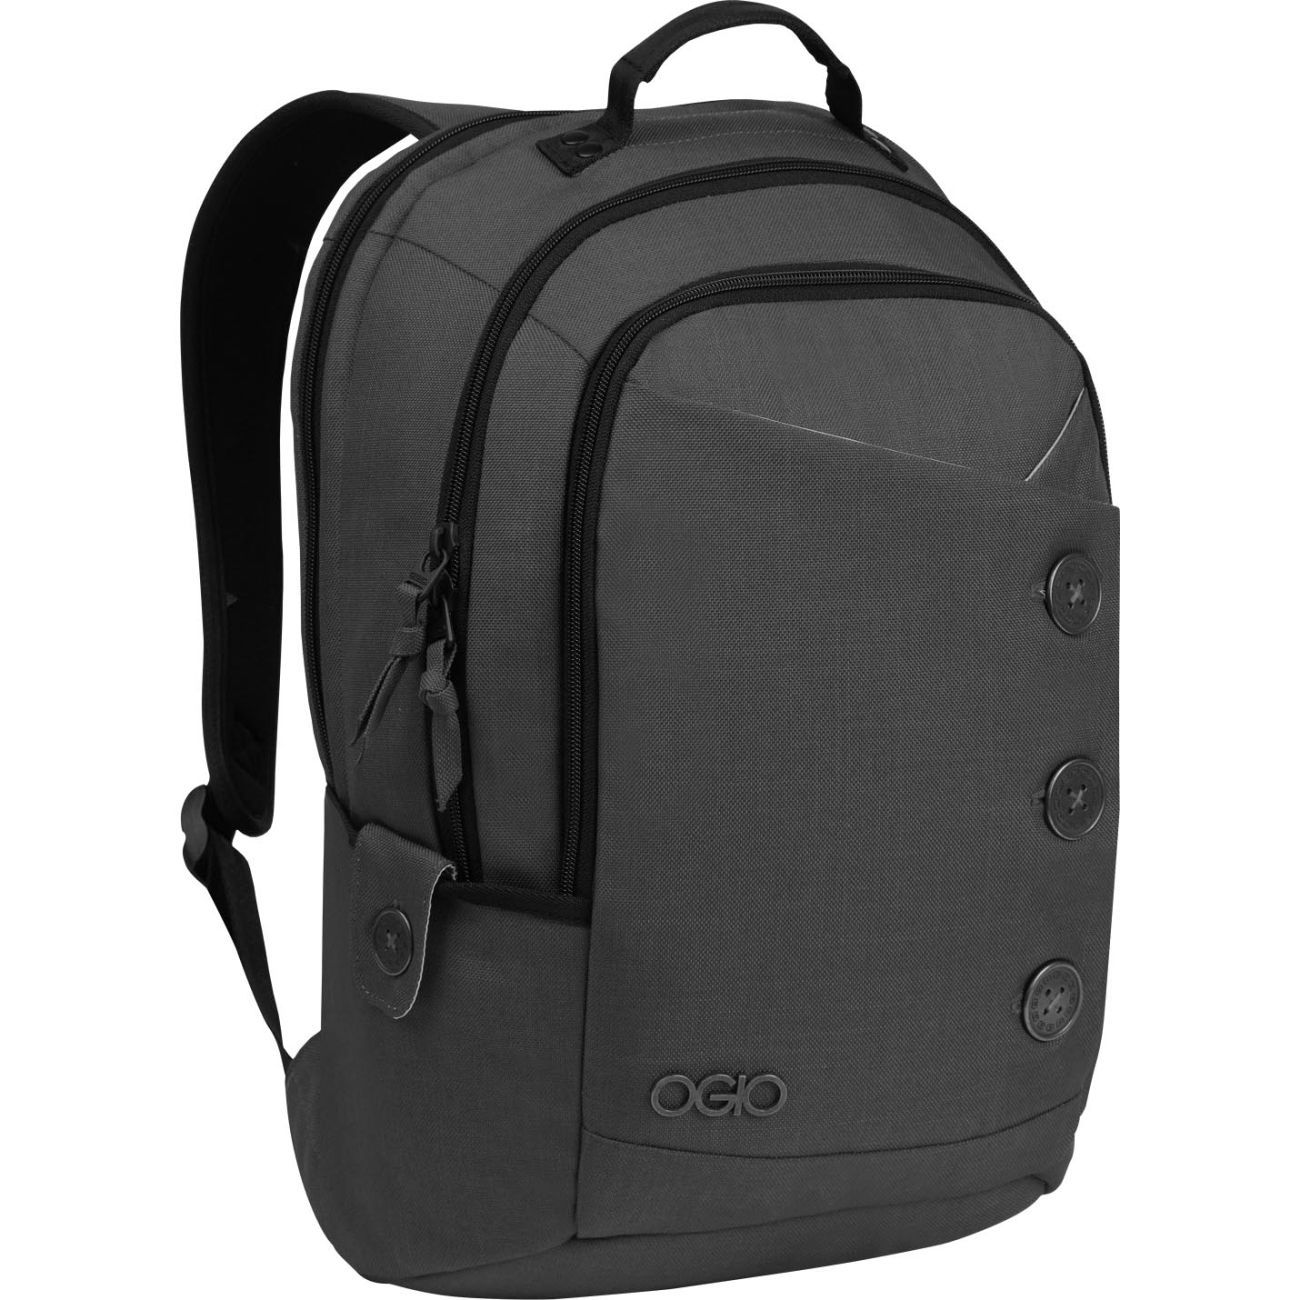 Ogio Women's Black Soho 17-inch Laptop Backpack by Ogio | Color ...